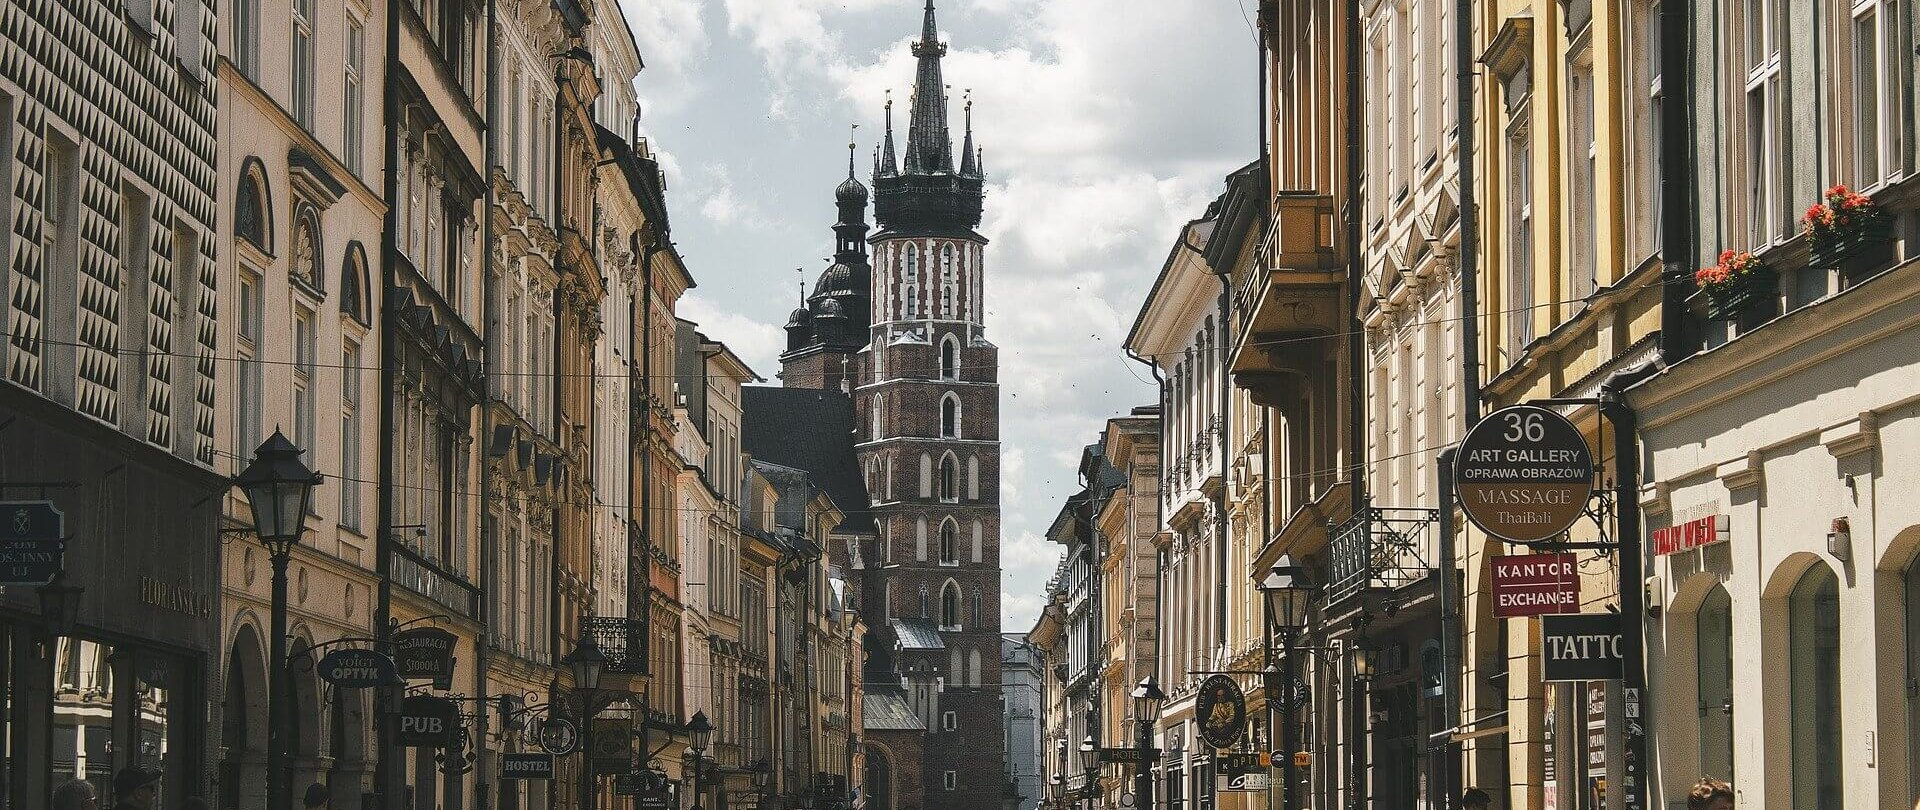 Plan for the weekend in Krakow